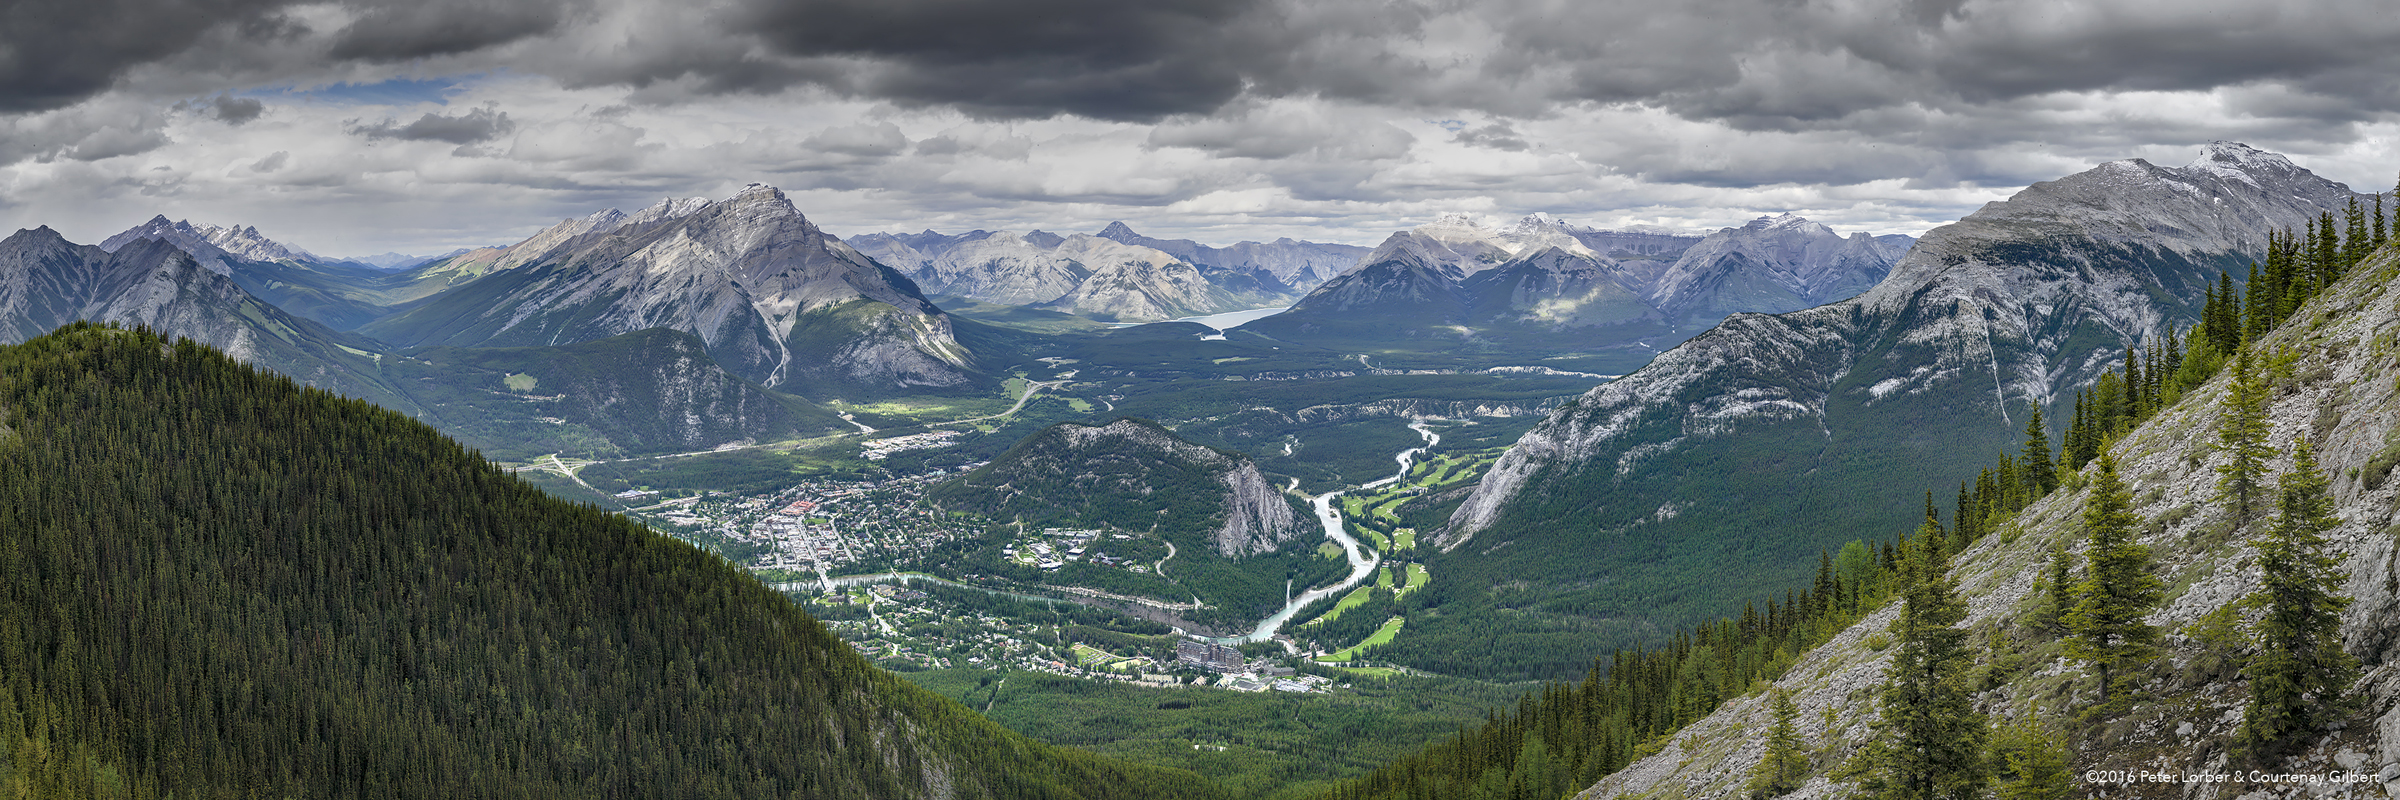 View from Sulphur Mountain 2